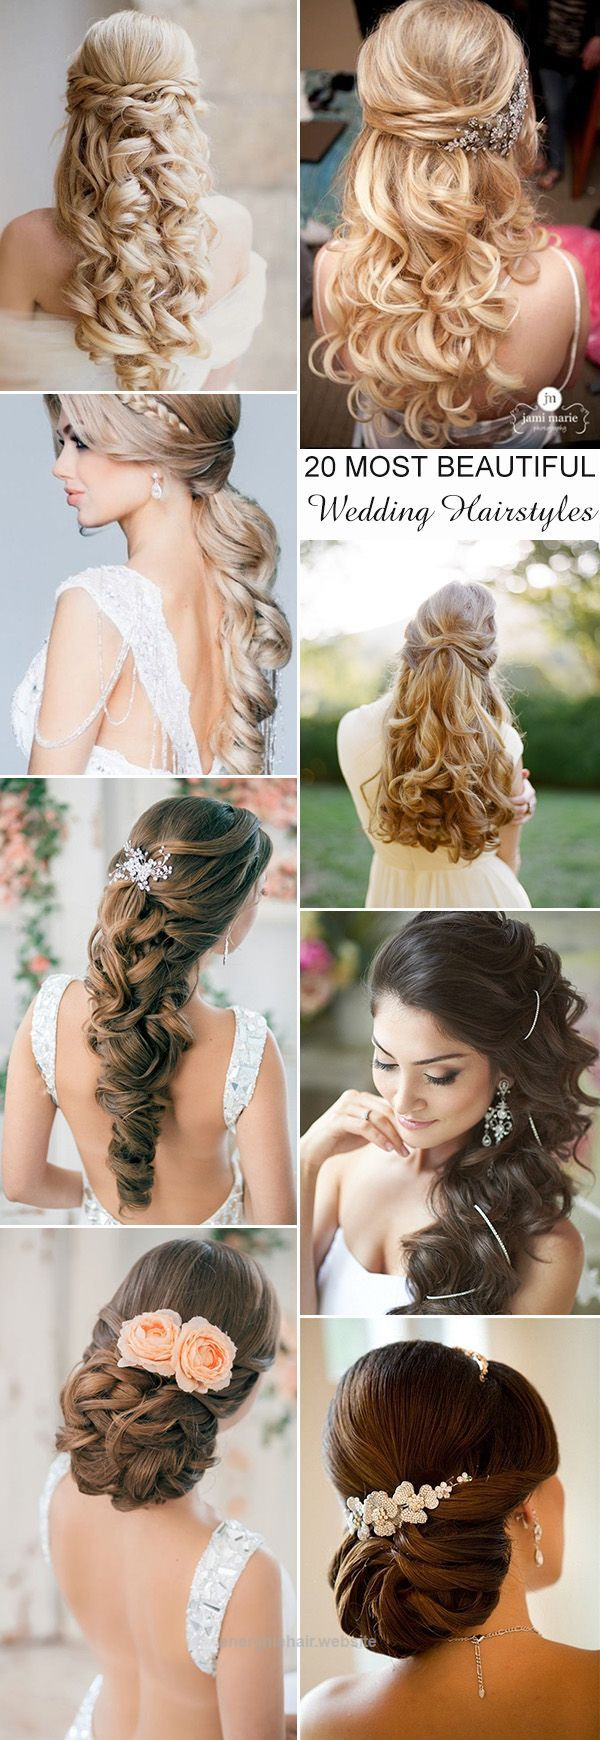 most beautiful and elegant wedding hairstyles for long hair